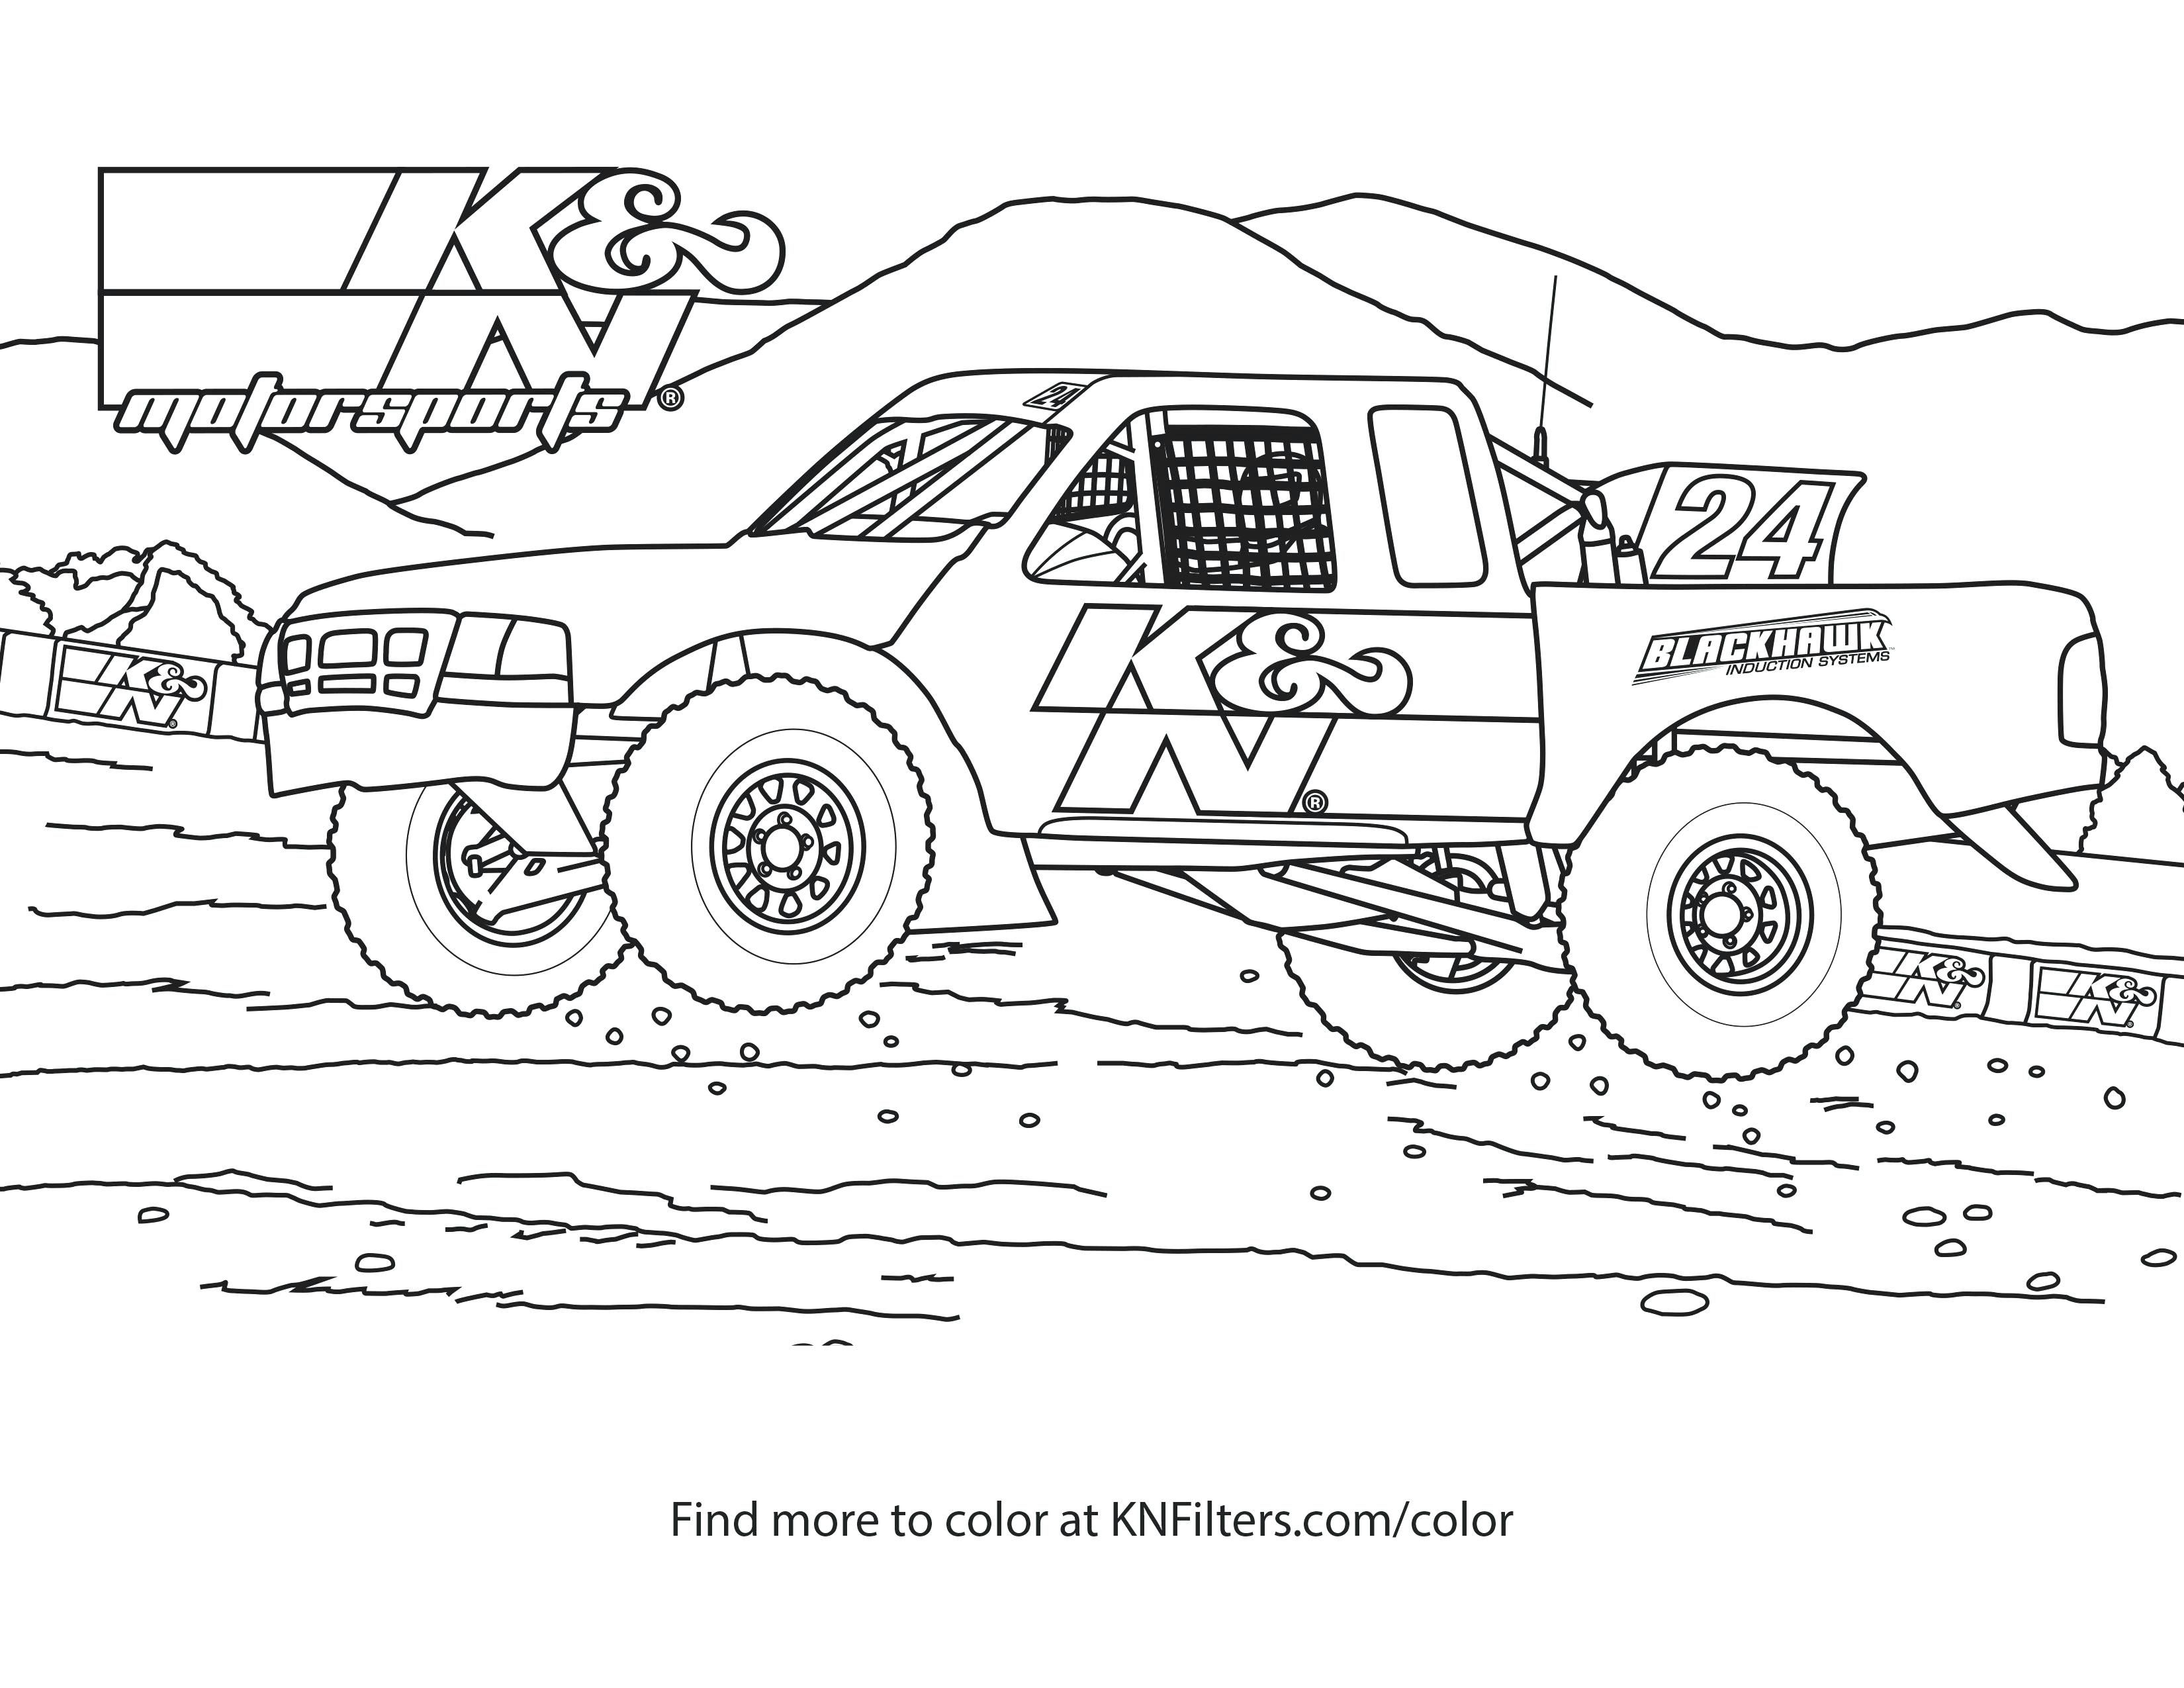 Off Road Vehicle Coloring Pages Printable Truck Coloring Pages Coloring Pages For Kids Printable Coloring Pages